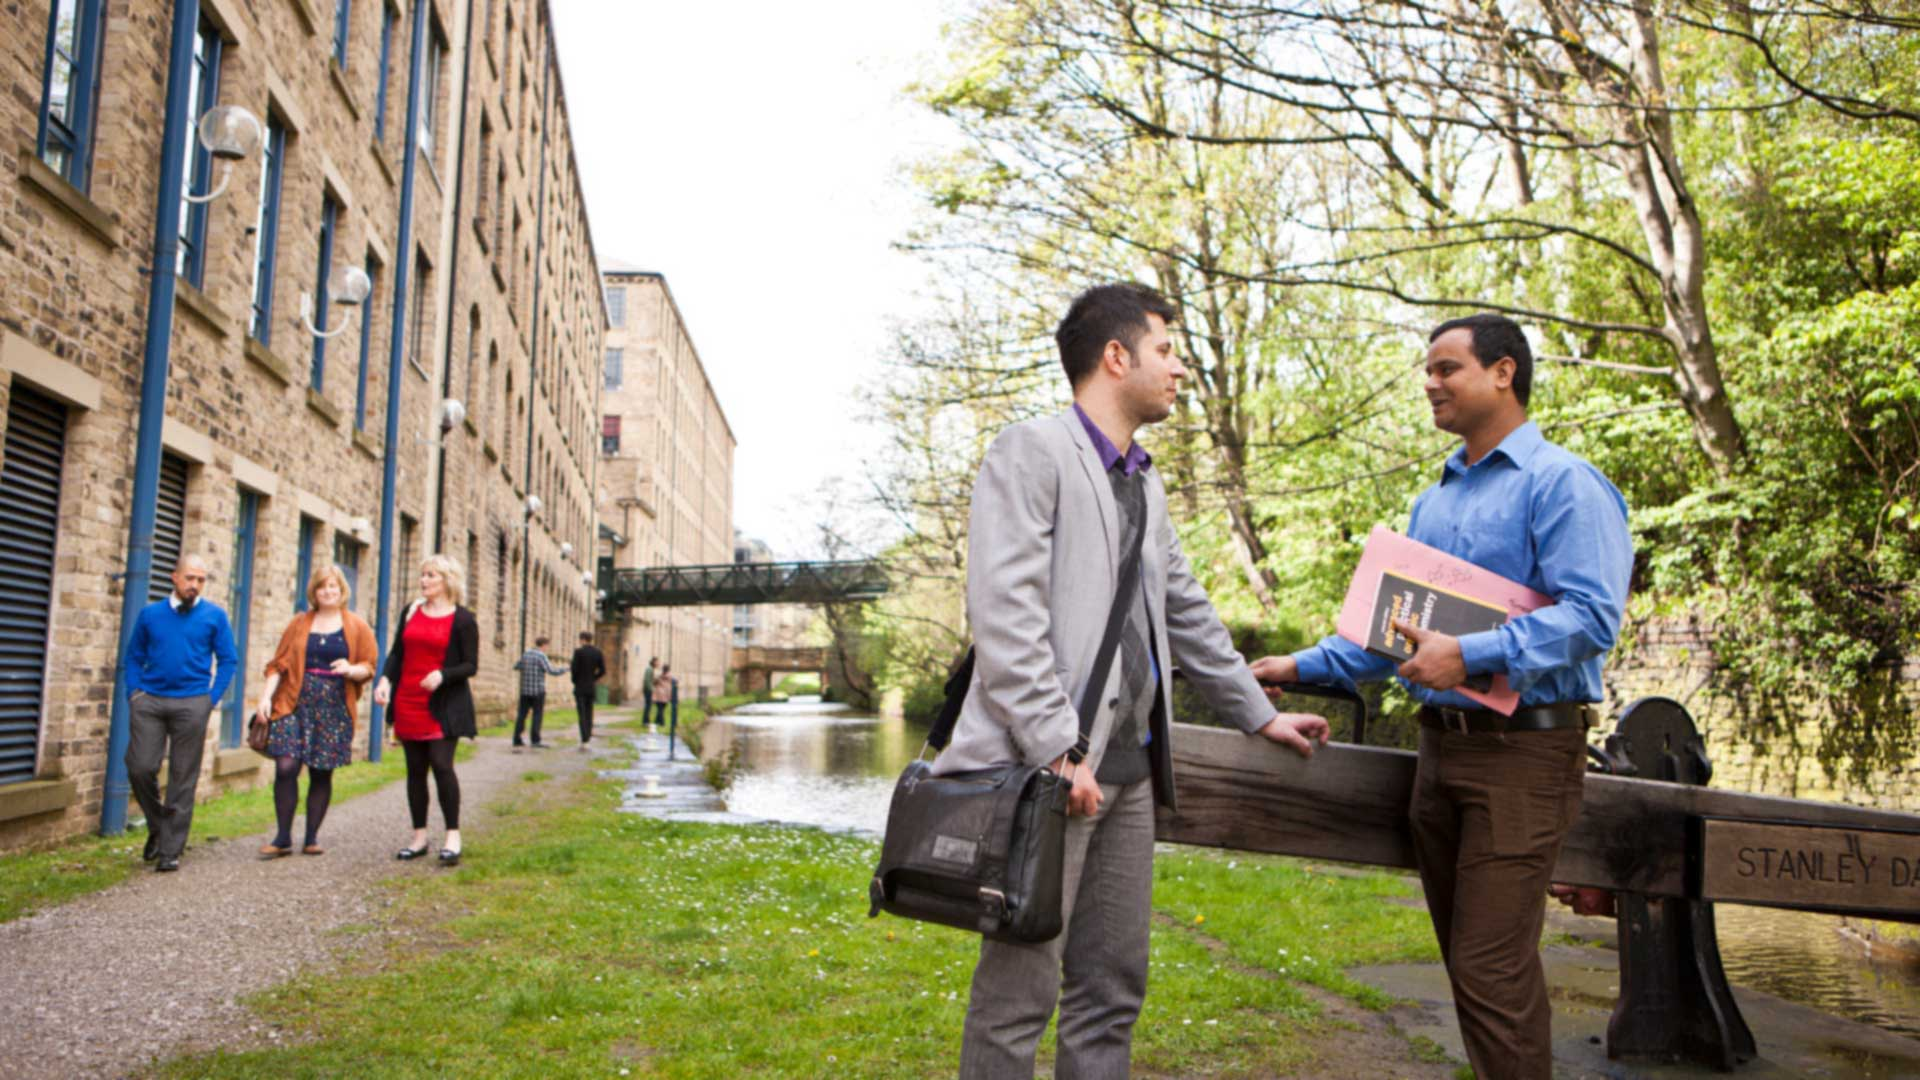 Two students stand chatting next to the canal behind one of the canalside buildings. Other students walk in the background.